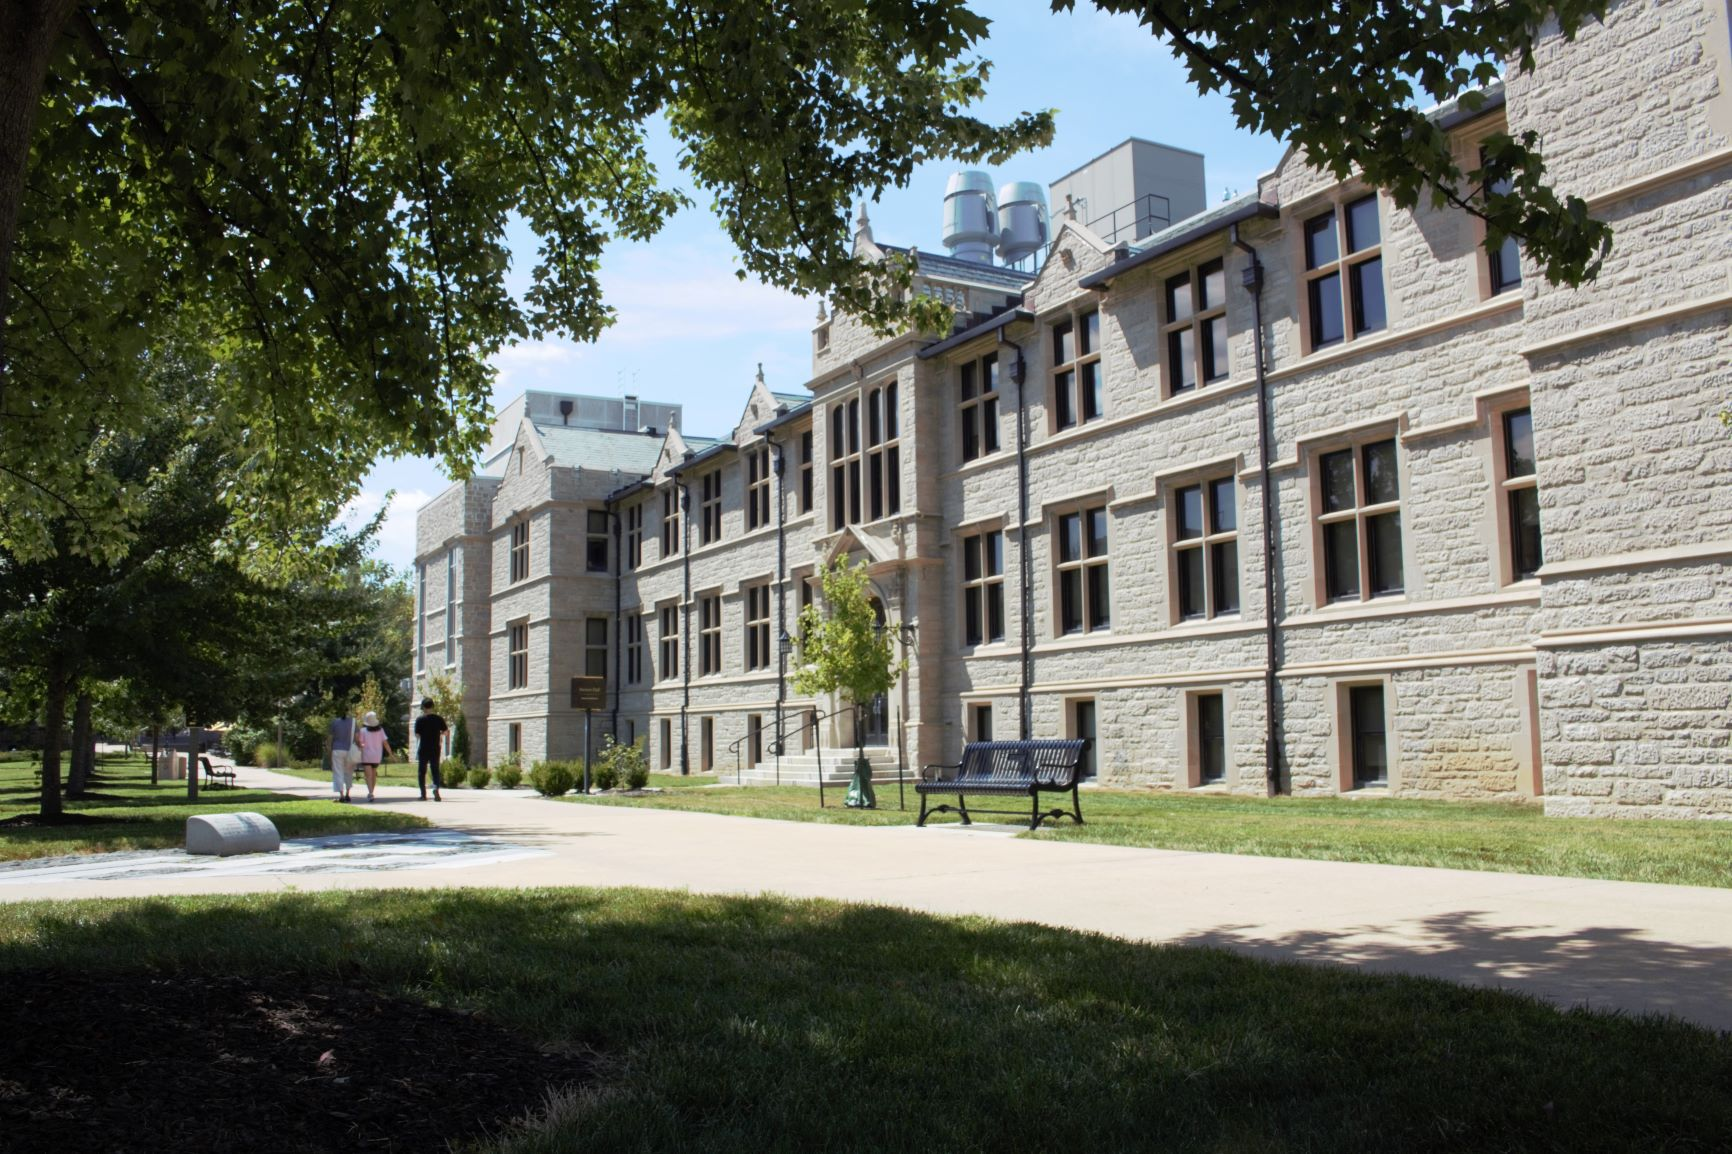 Stewart Hall: This beautiful building was completely renovated for the 2018/2019 academic year. It now holds brand new facilities, including the GIS Lab, the Geography Field Lab, various geography (and biology) classrooms, the Geography Library, the Geography faculty and grad offices, and Parker Auditorium.